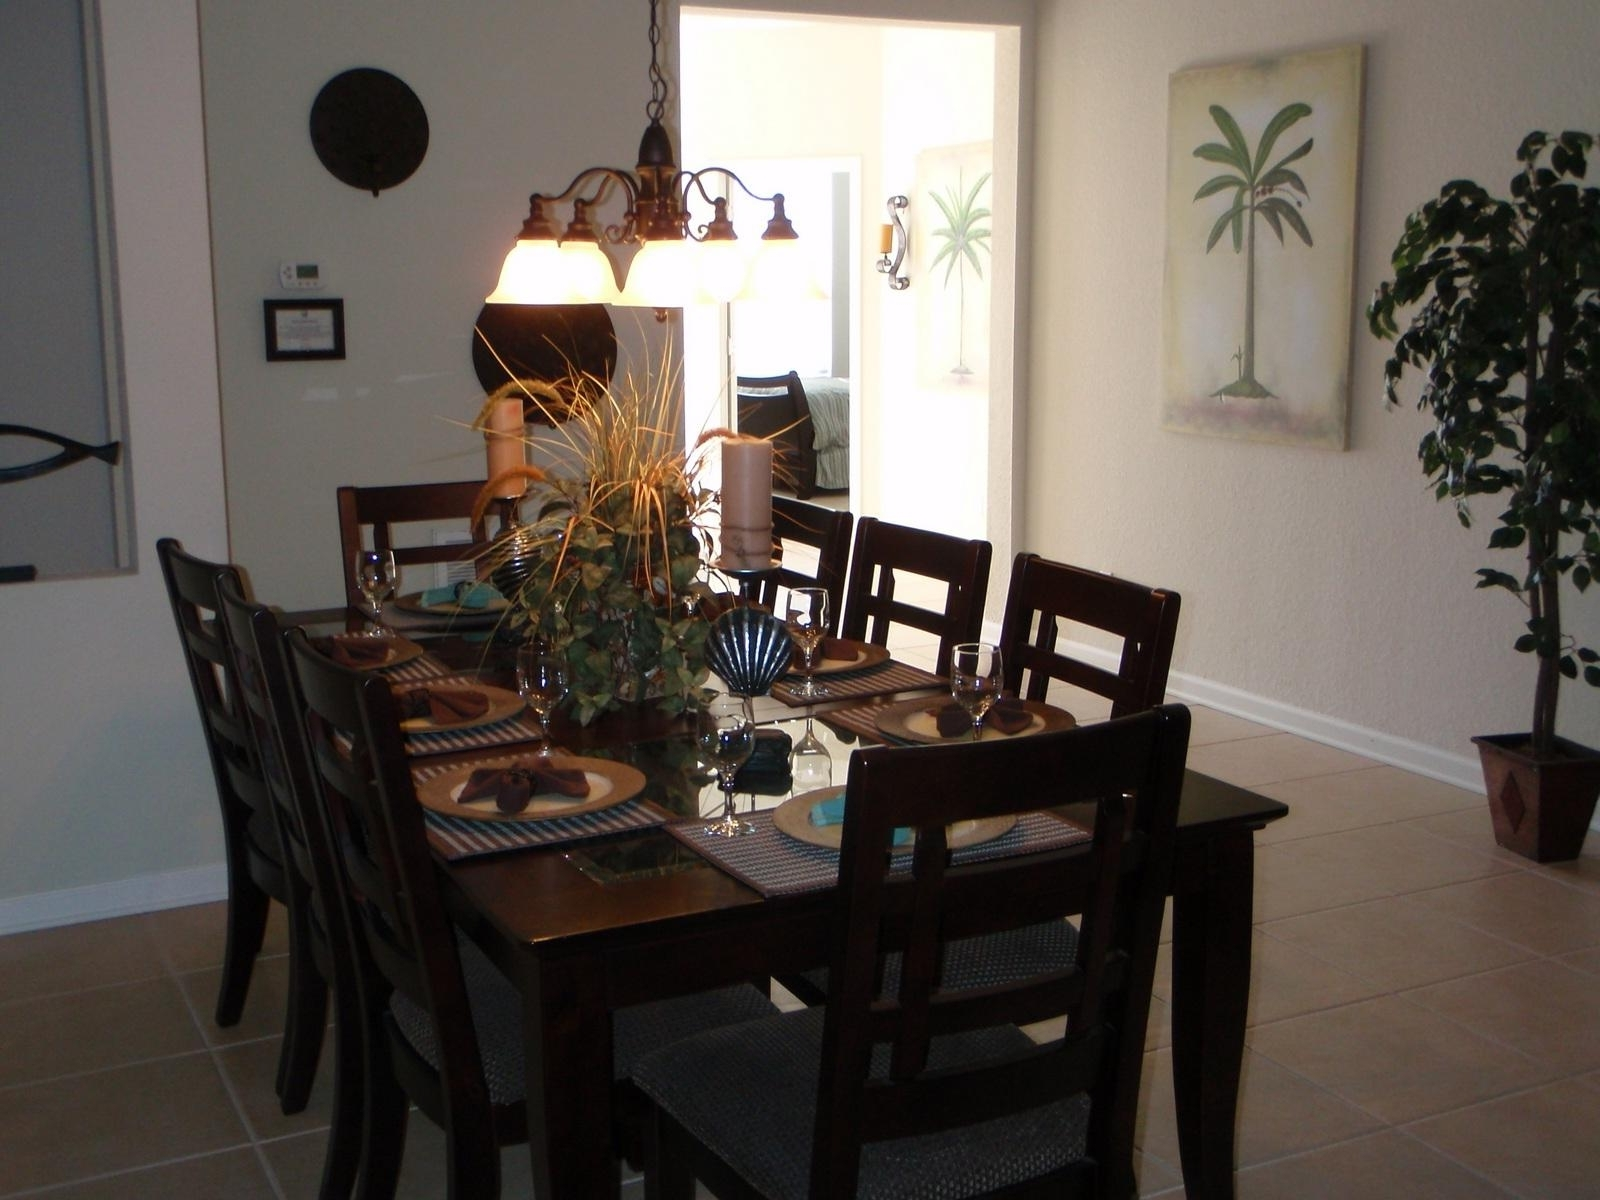 Well Known White Dining Tables 8 Seater For 8 Seater Dining Table With Rough Tile Flooring And Chandelier Over (View 19 of 25)